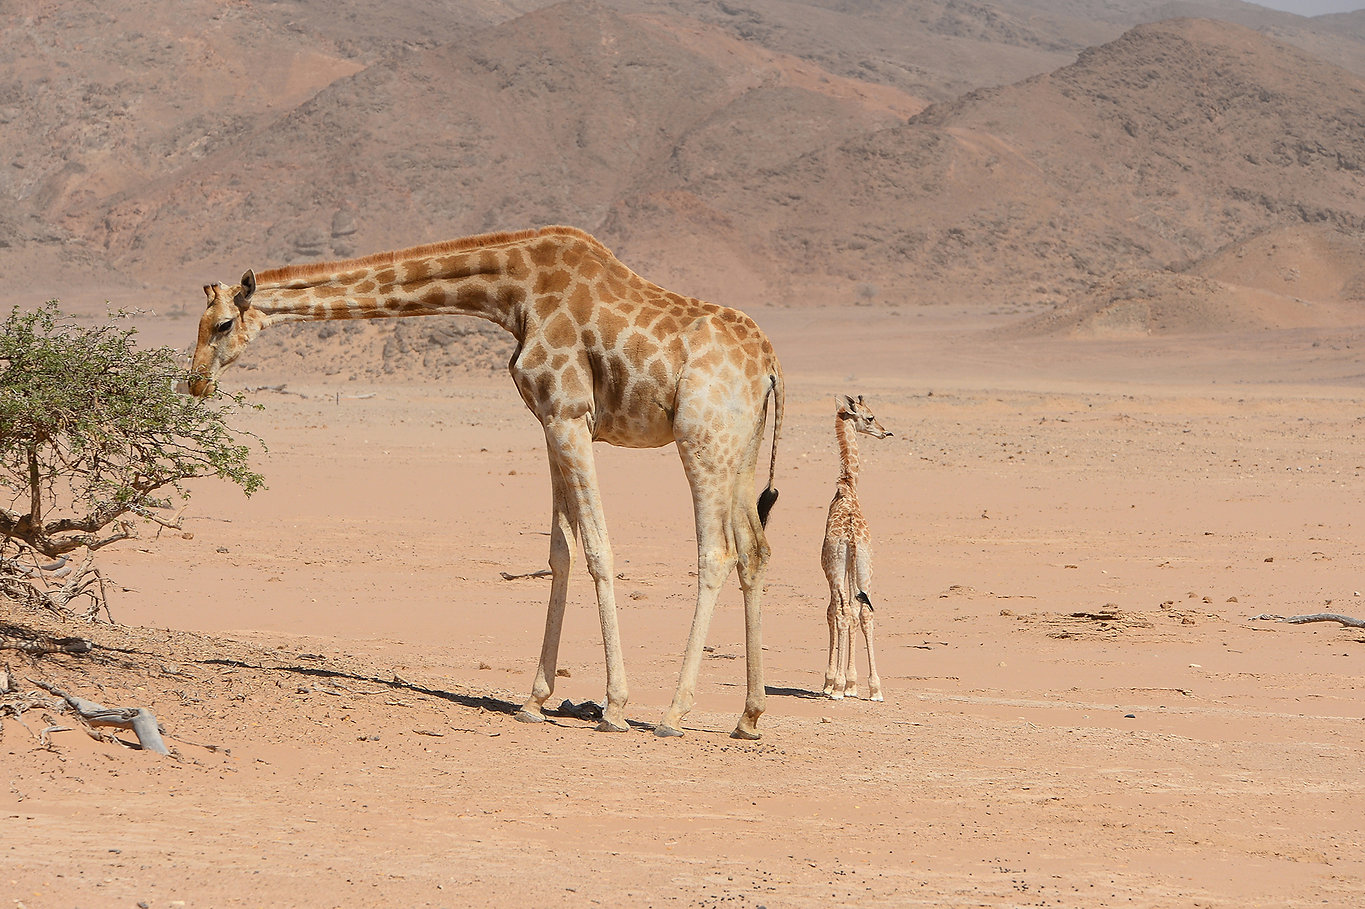 Giraffe with Baby in Hoanib ©Johannes Ratermann